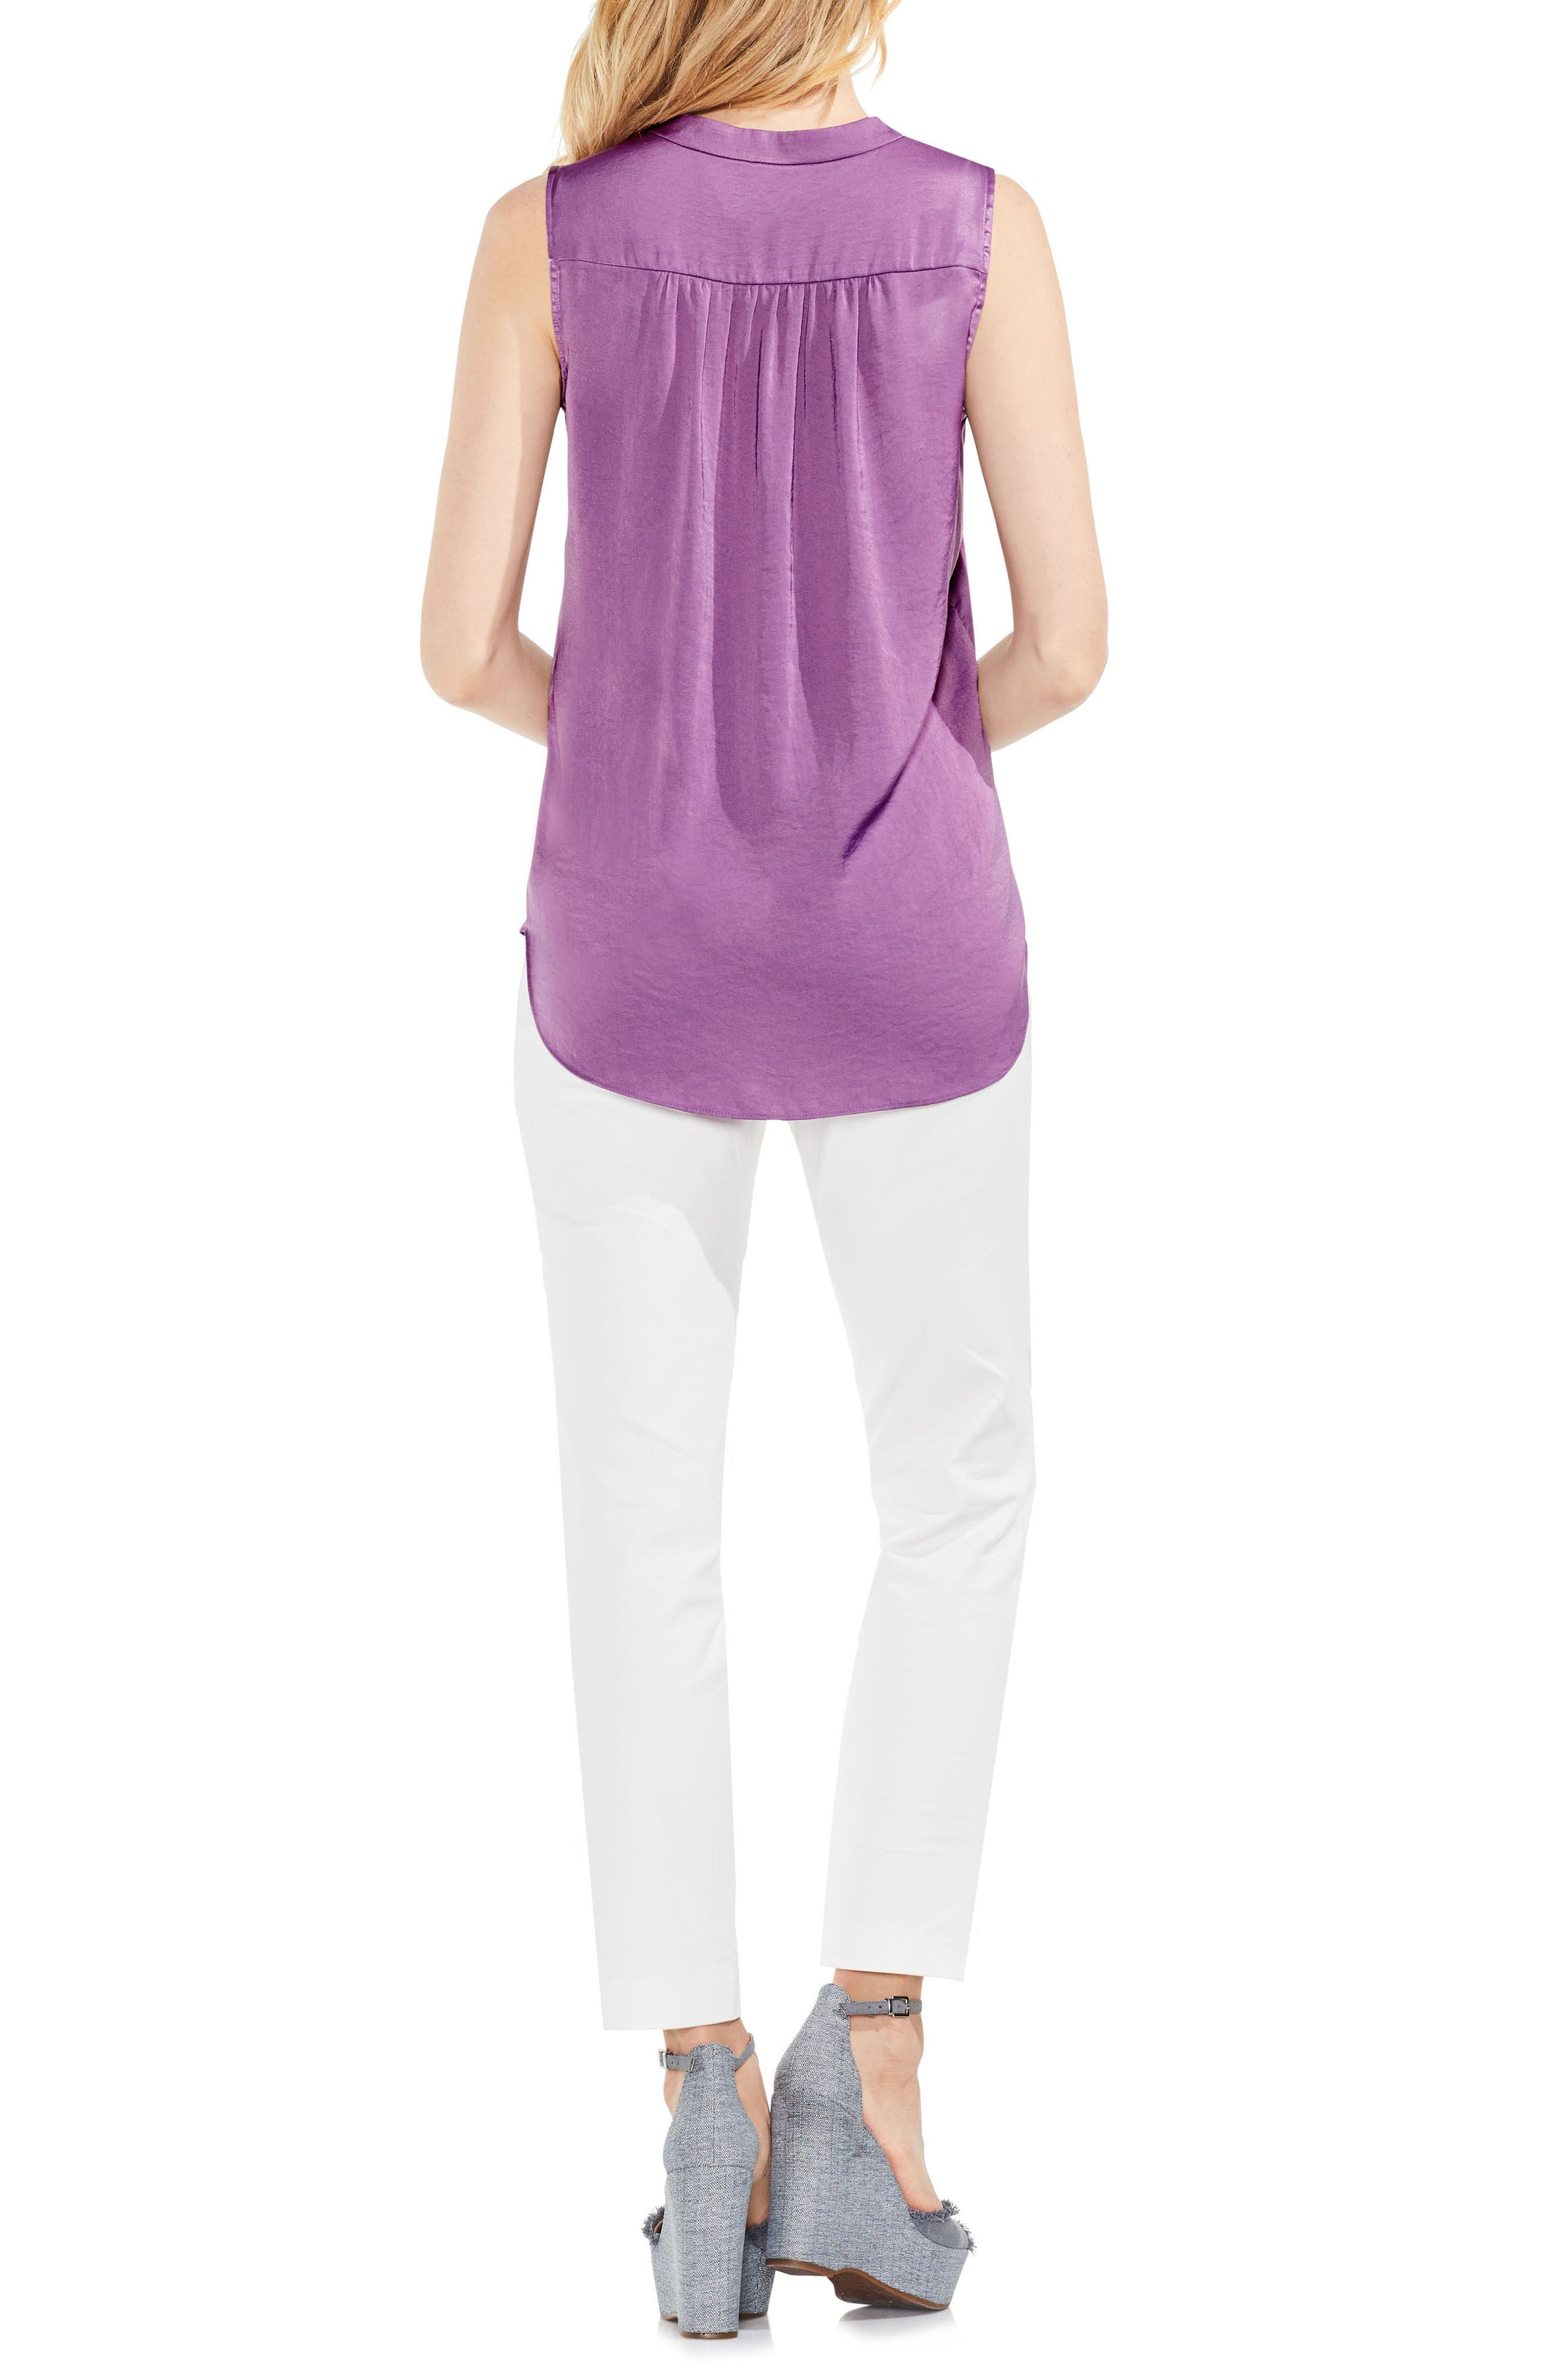 VINCE CAMUTO, Rumpled Satin Blouse, Alternate thumbnail 3, color, NEW TULIP